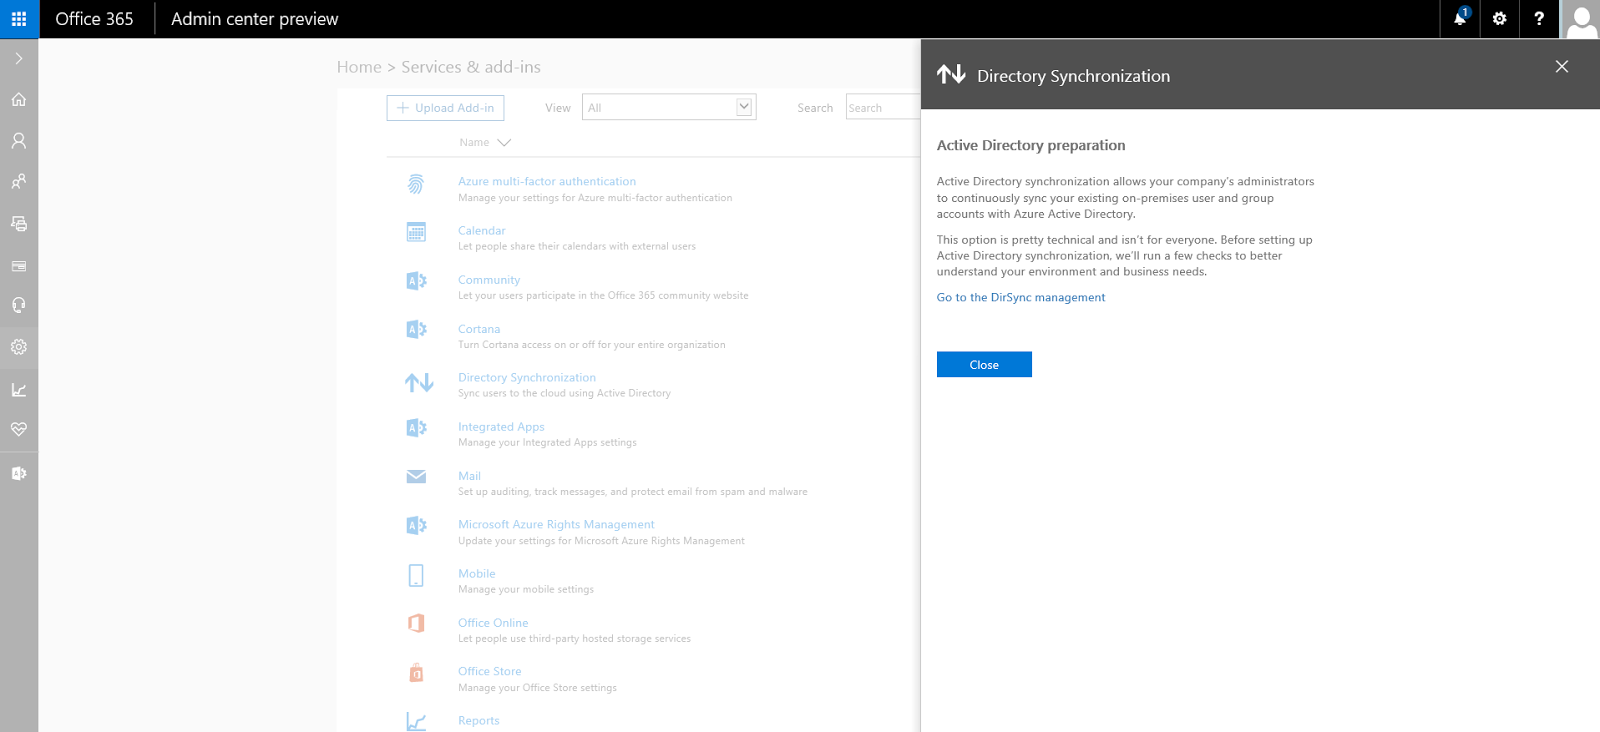 TrustSharePoint: How to Disable Directory Synchronization in Office 365